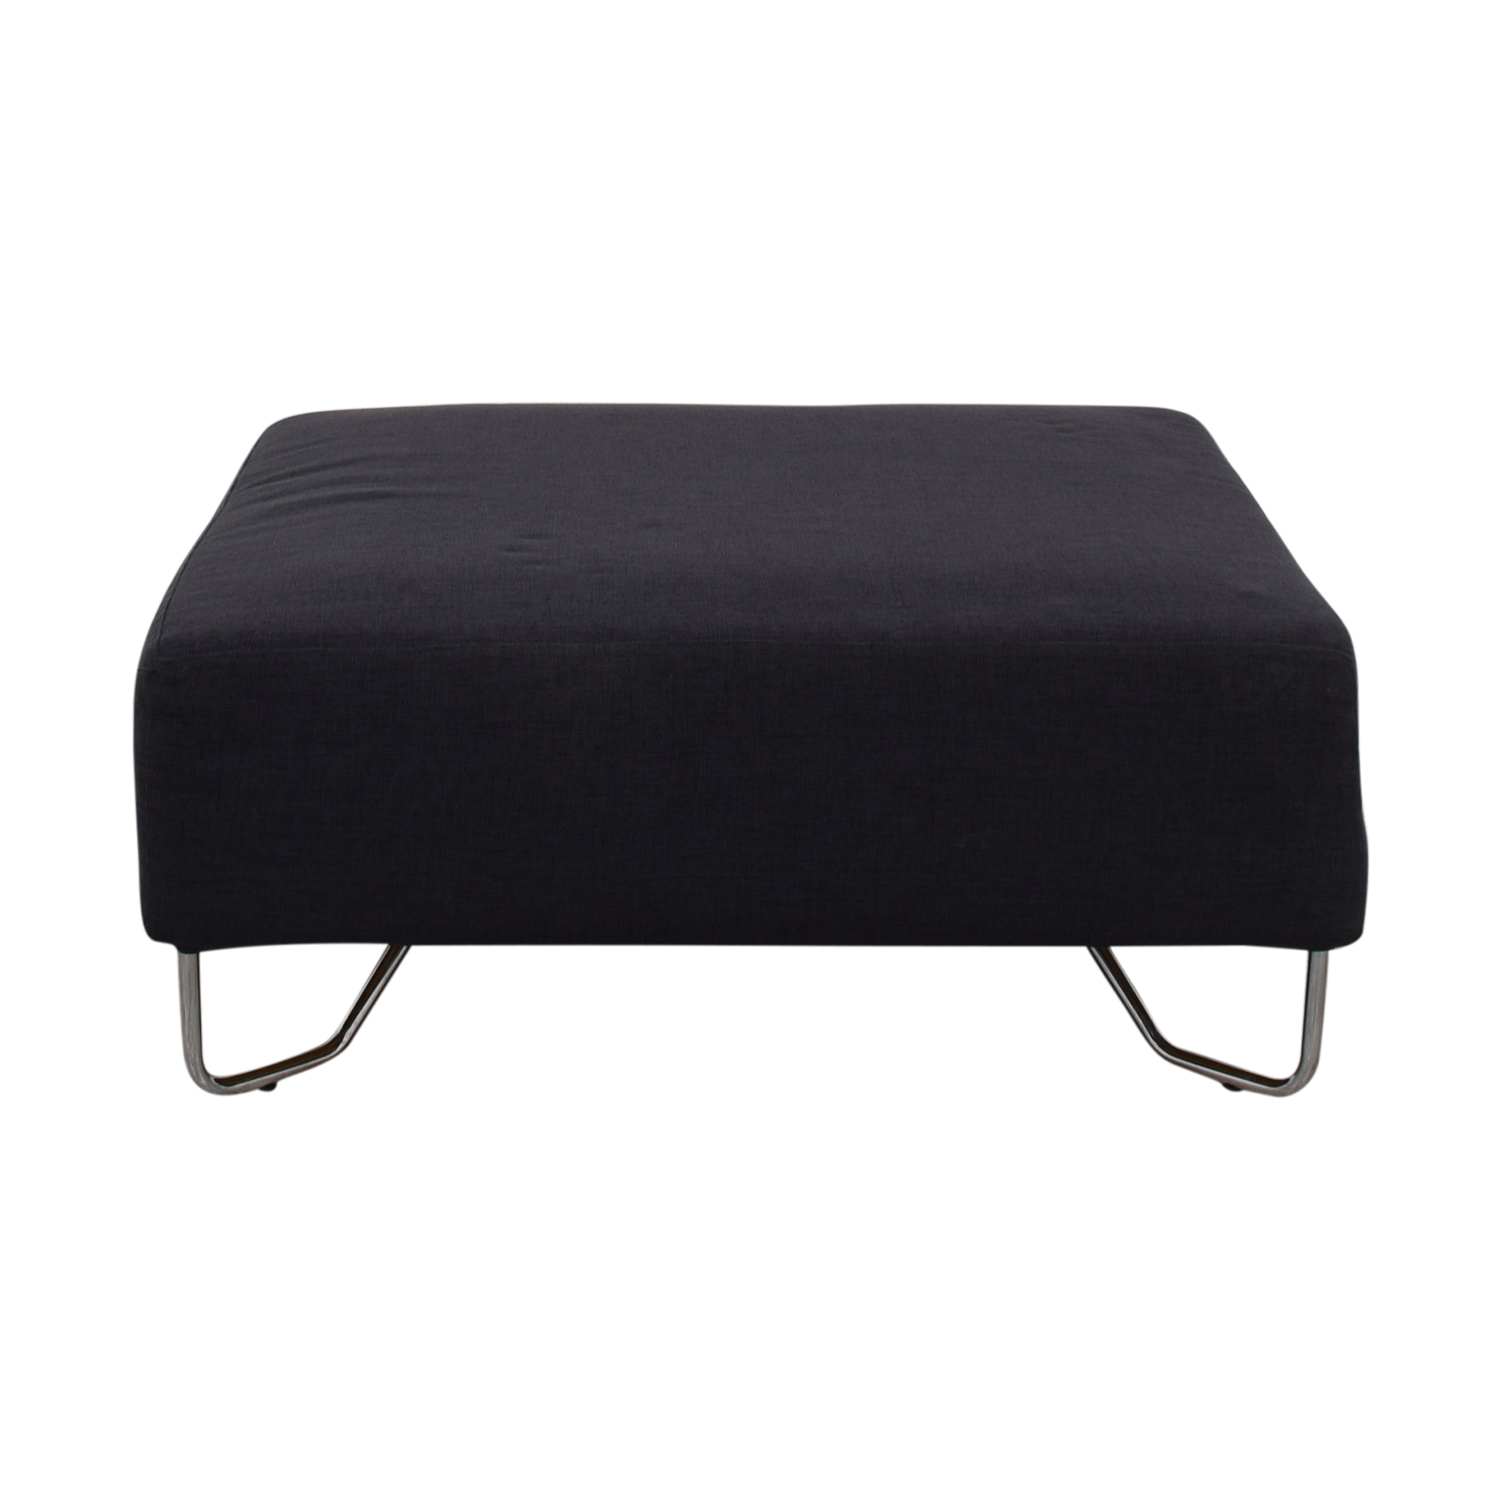 buy CB2 Lotus Navy Ottoman CB2 Ottomans